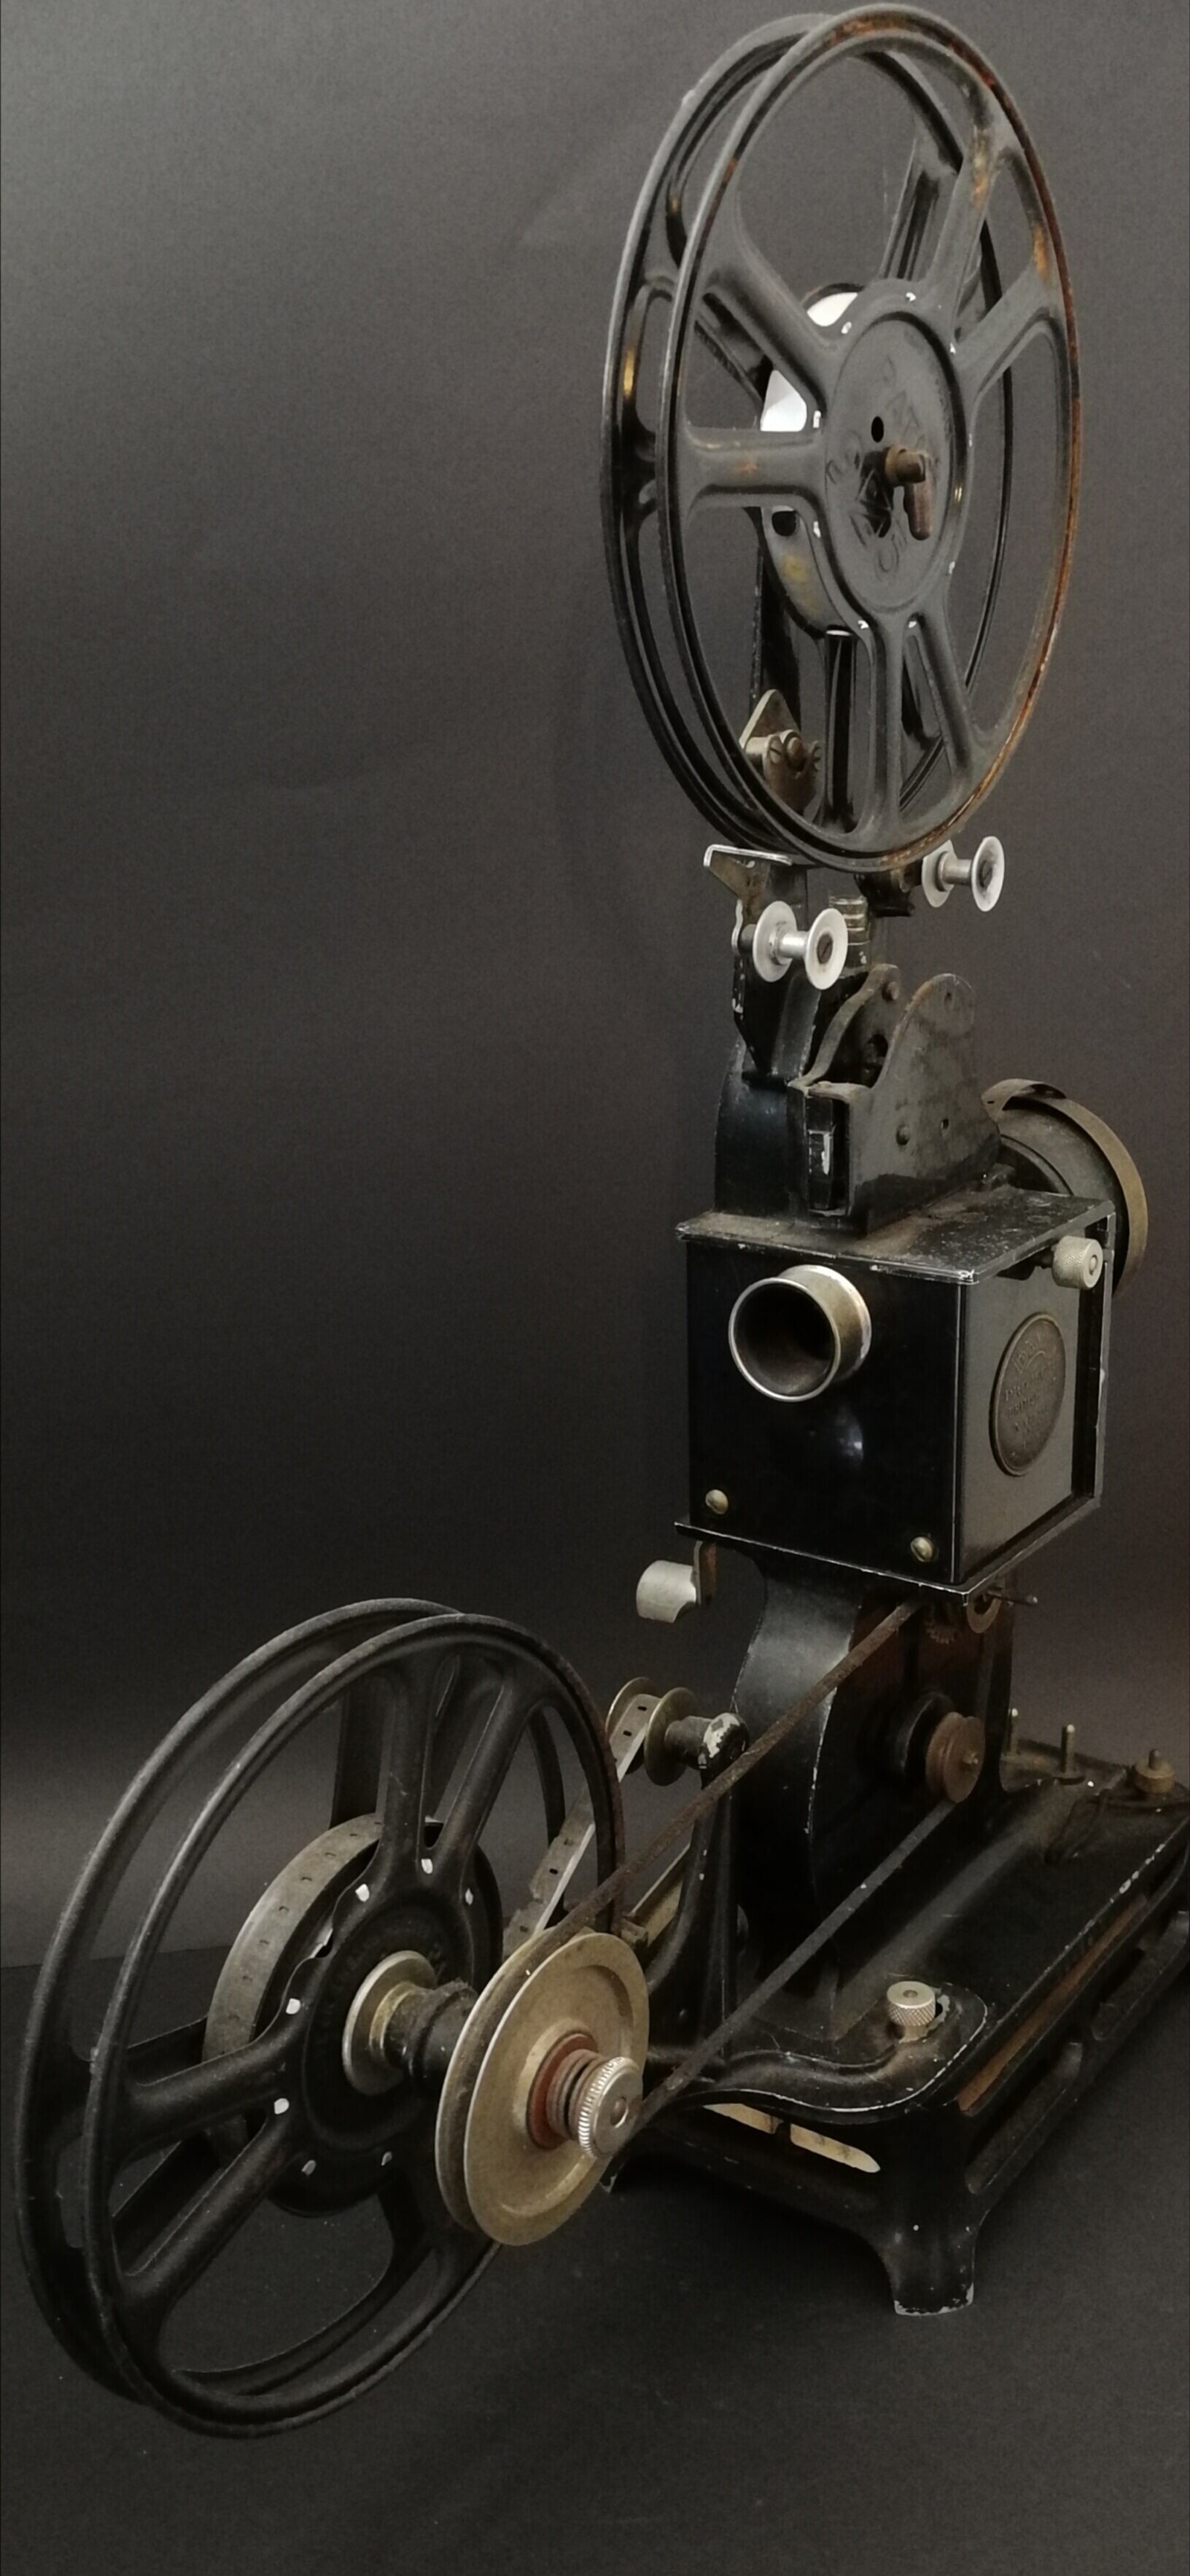 Pathescope Baby Projector 45 degree view